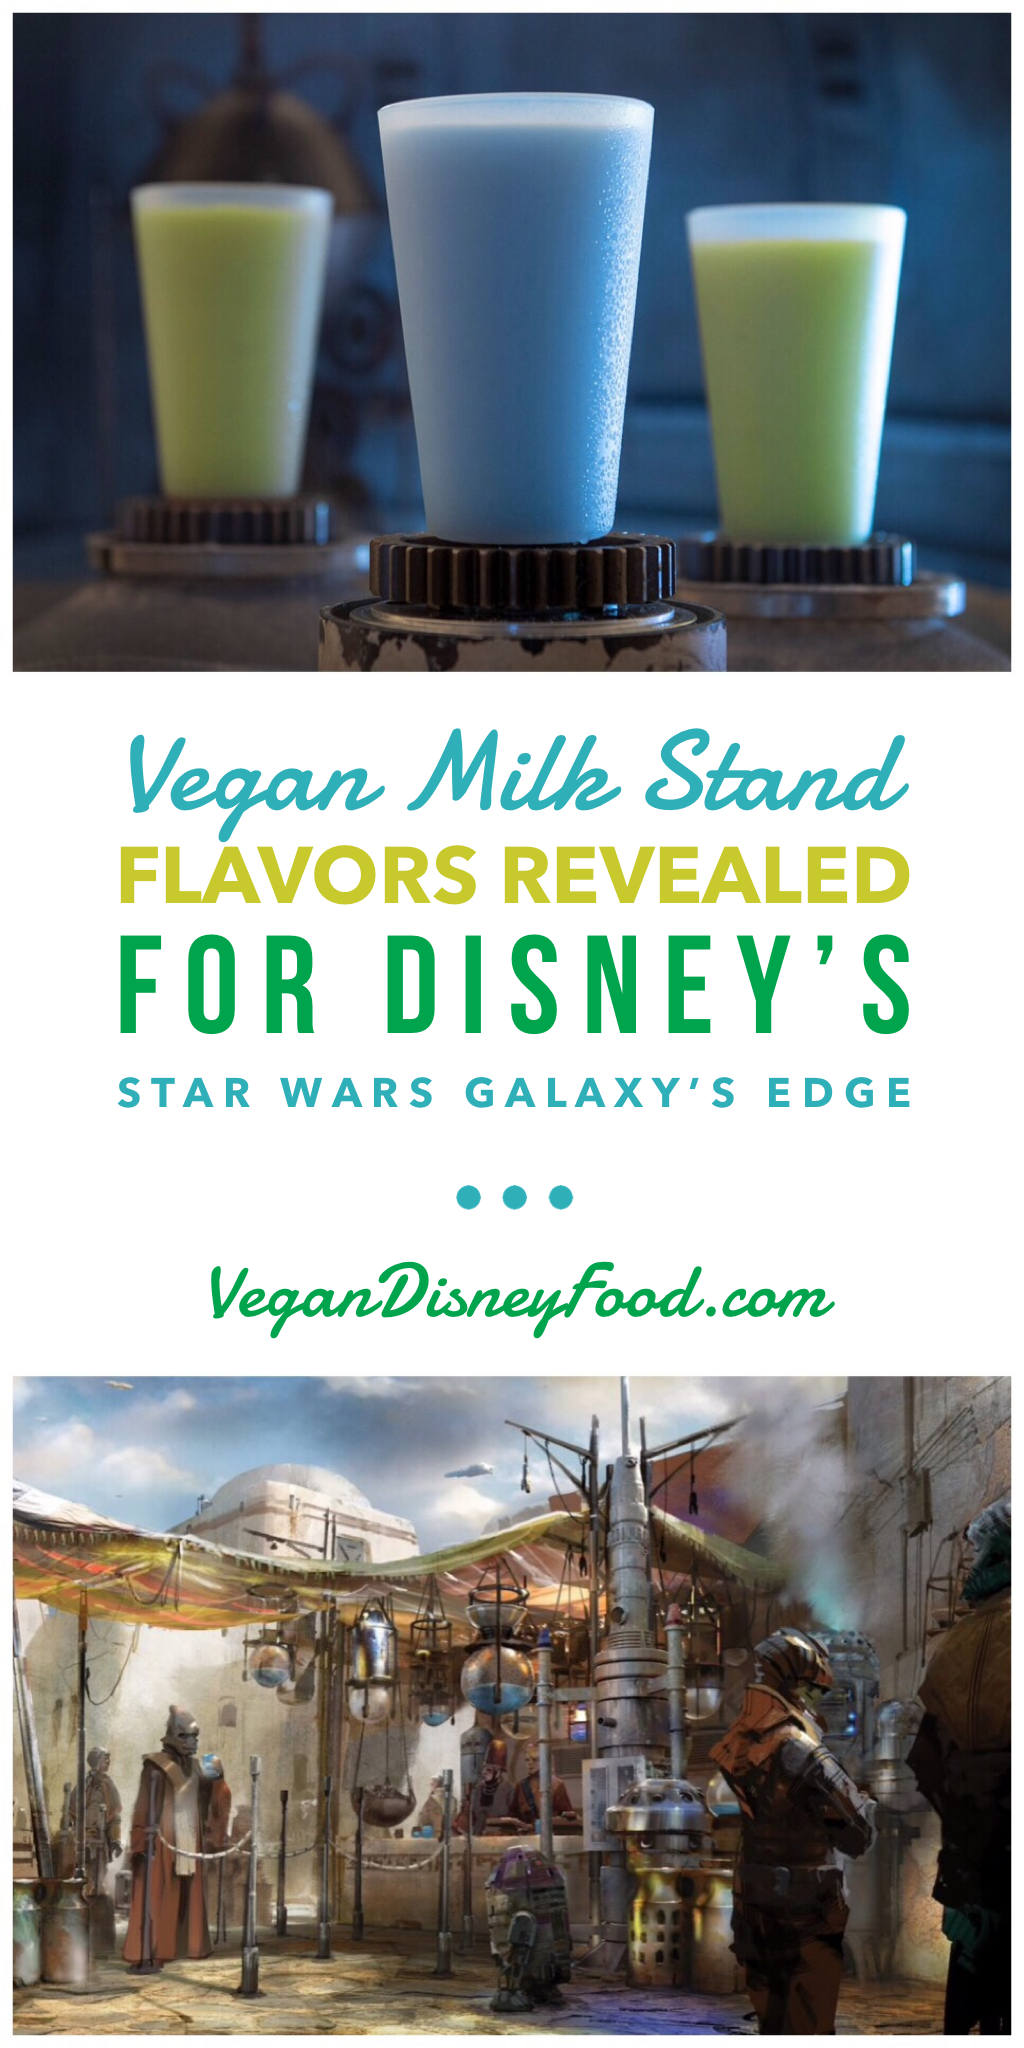 Vegan Milk Stand Flavors Revealed for Disney's Star Wars Galaxy's Edge